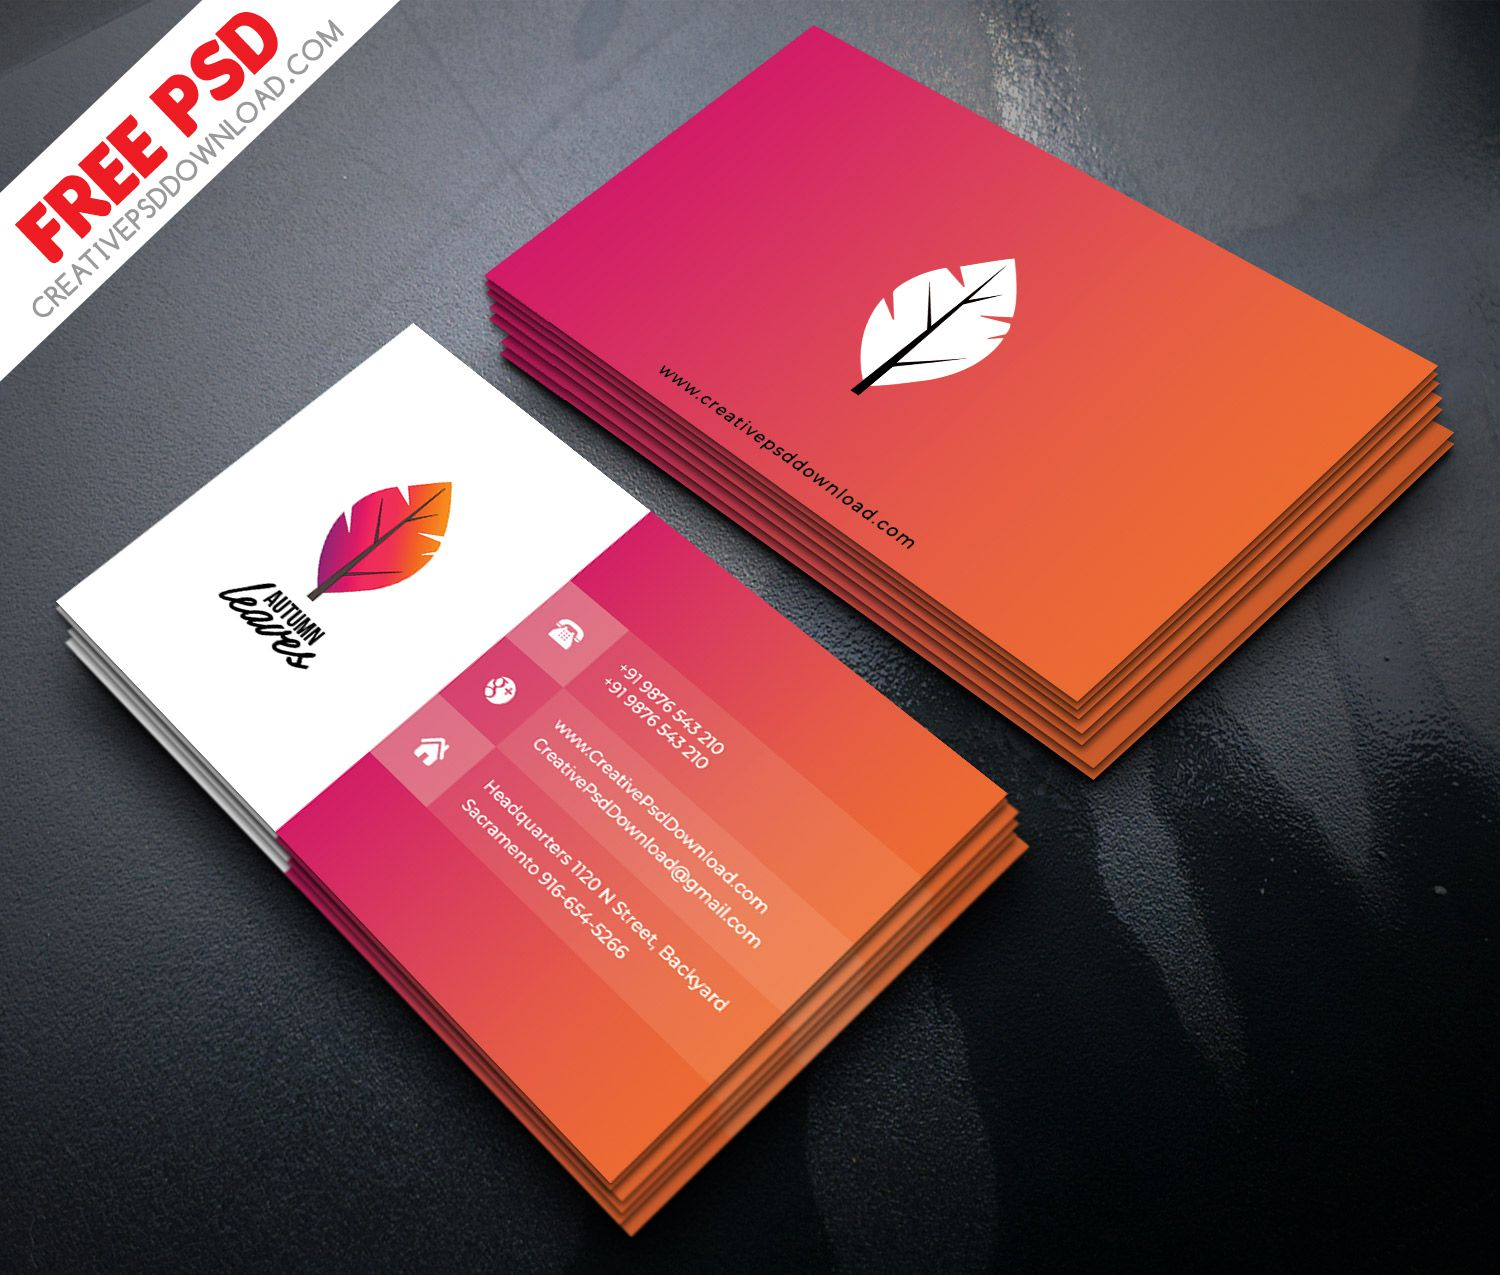 009 Unforgettable Blank Busines Card Template Psd Free Design  Photoshop DownloadFull